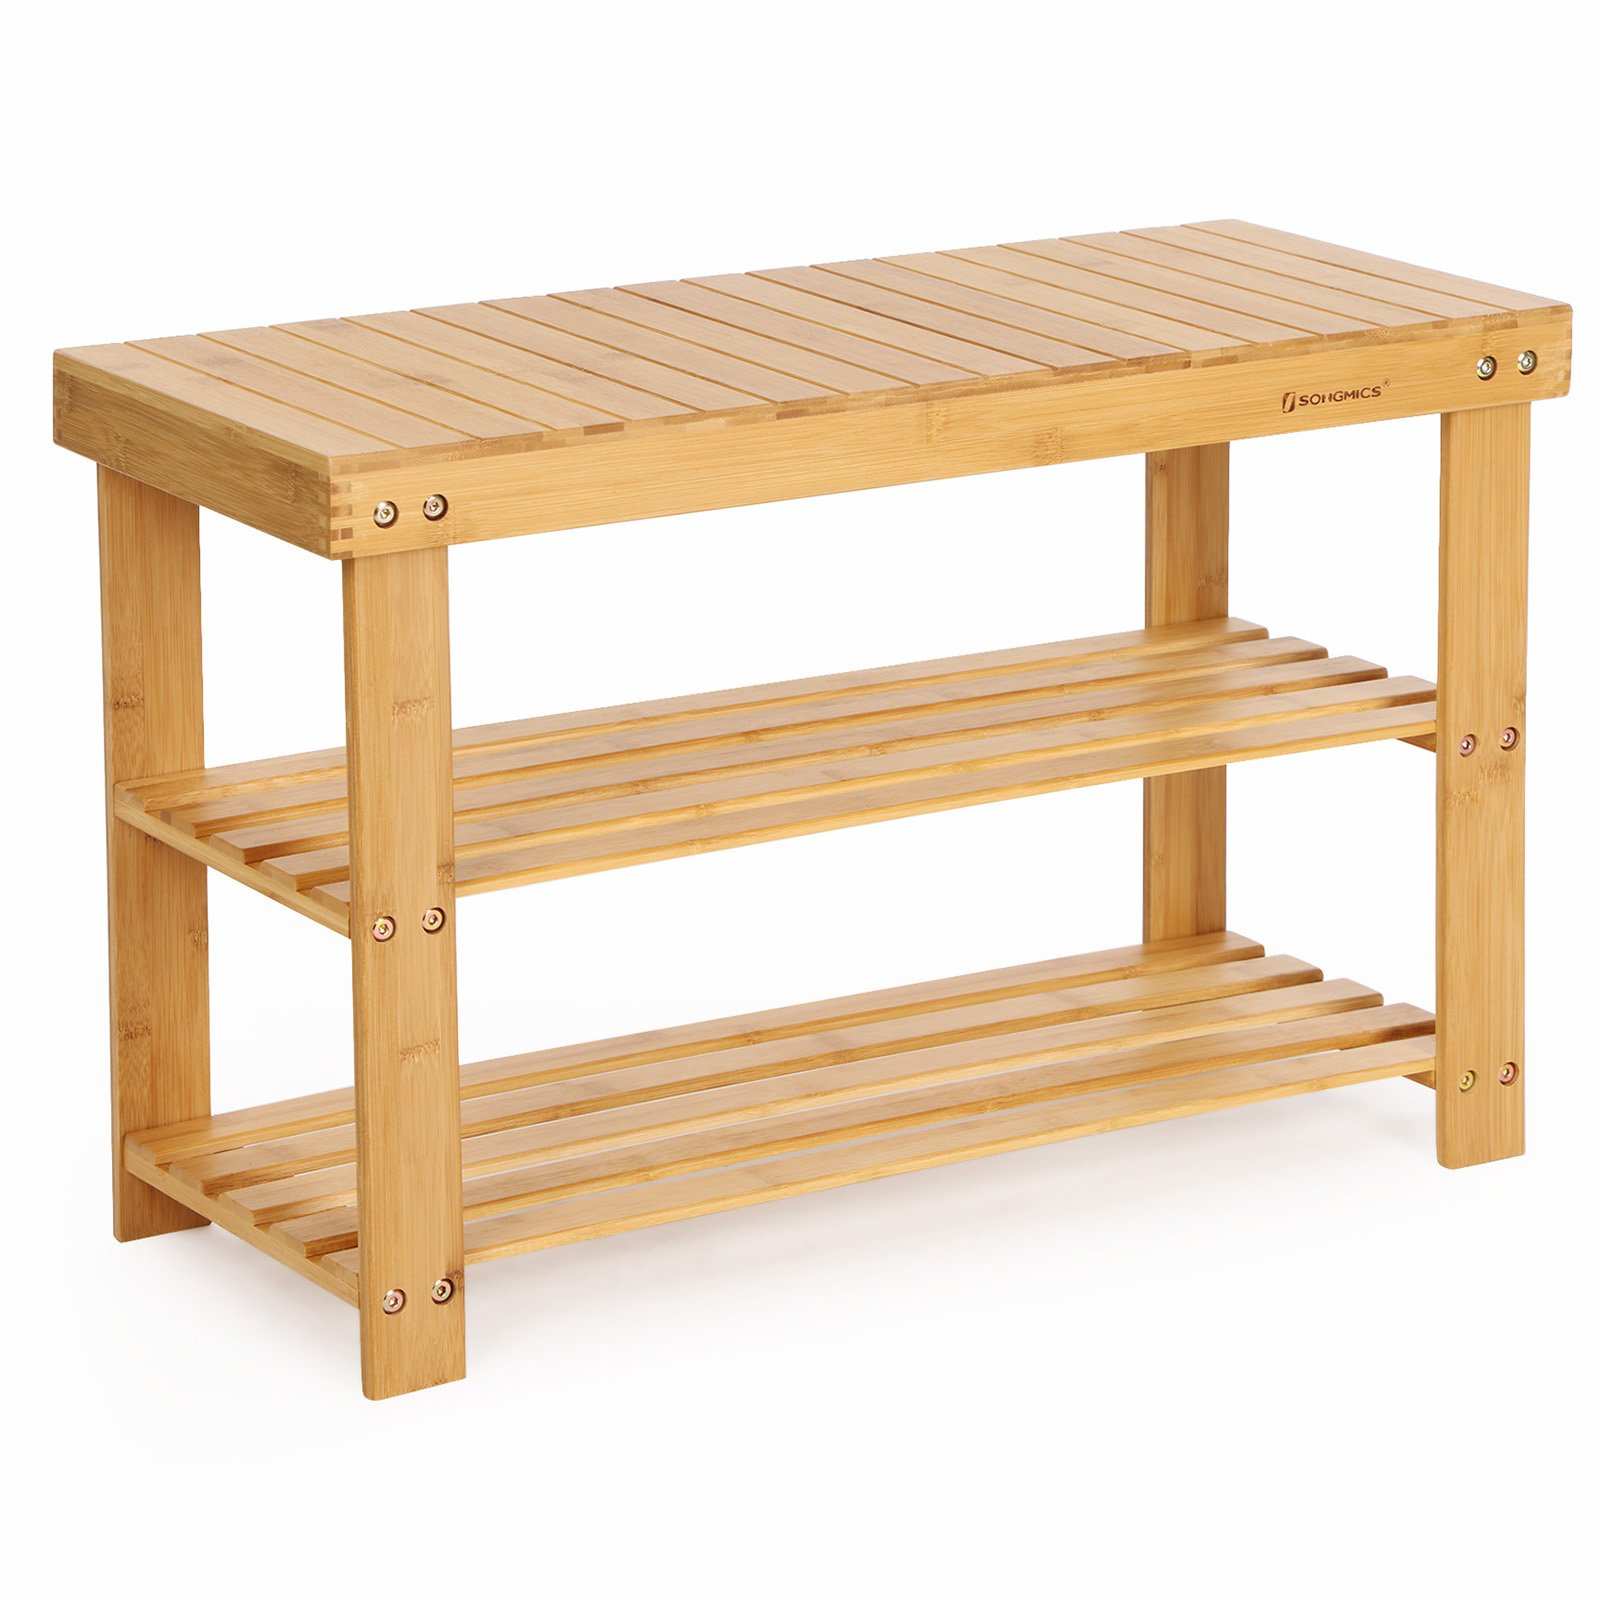 Best Rated in Entryway Furniture & Helpful Customer Reviews - Amazon.com